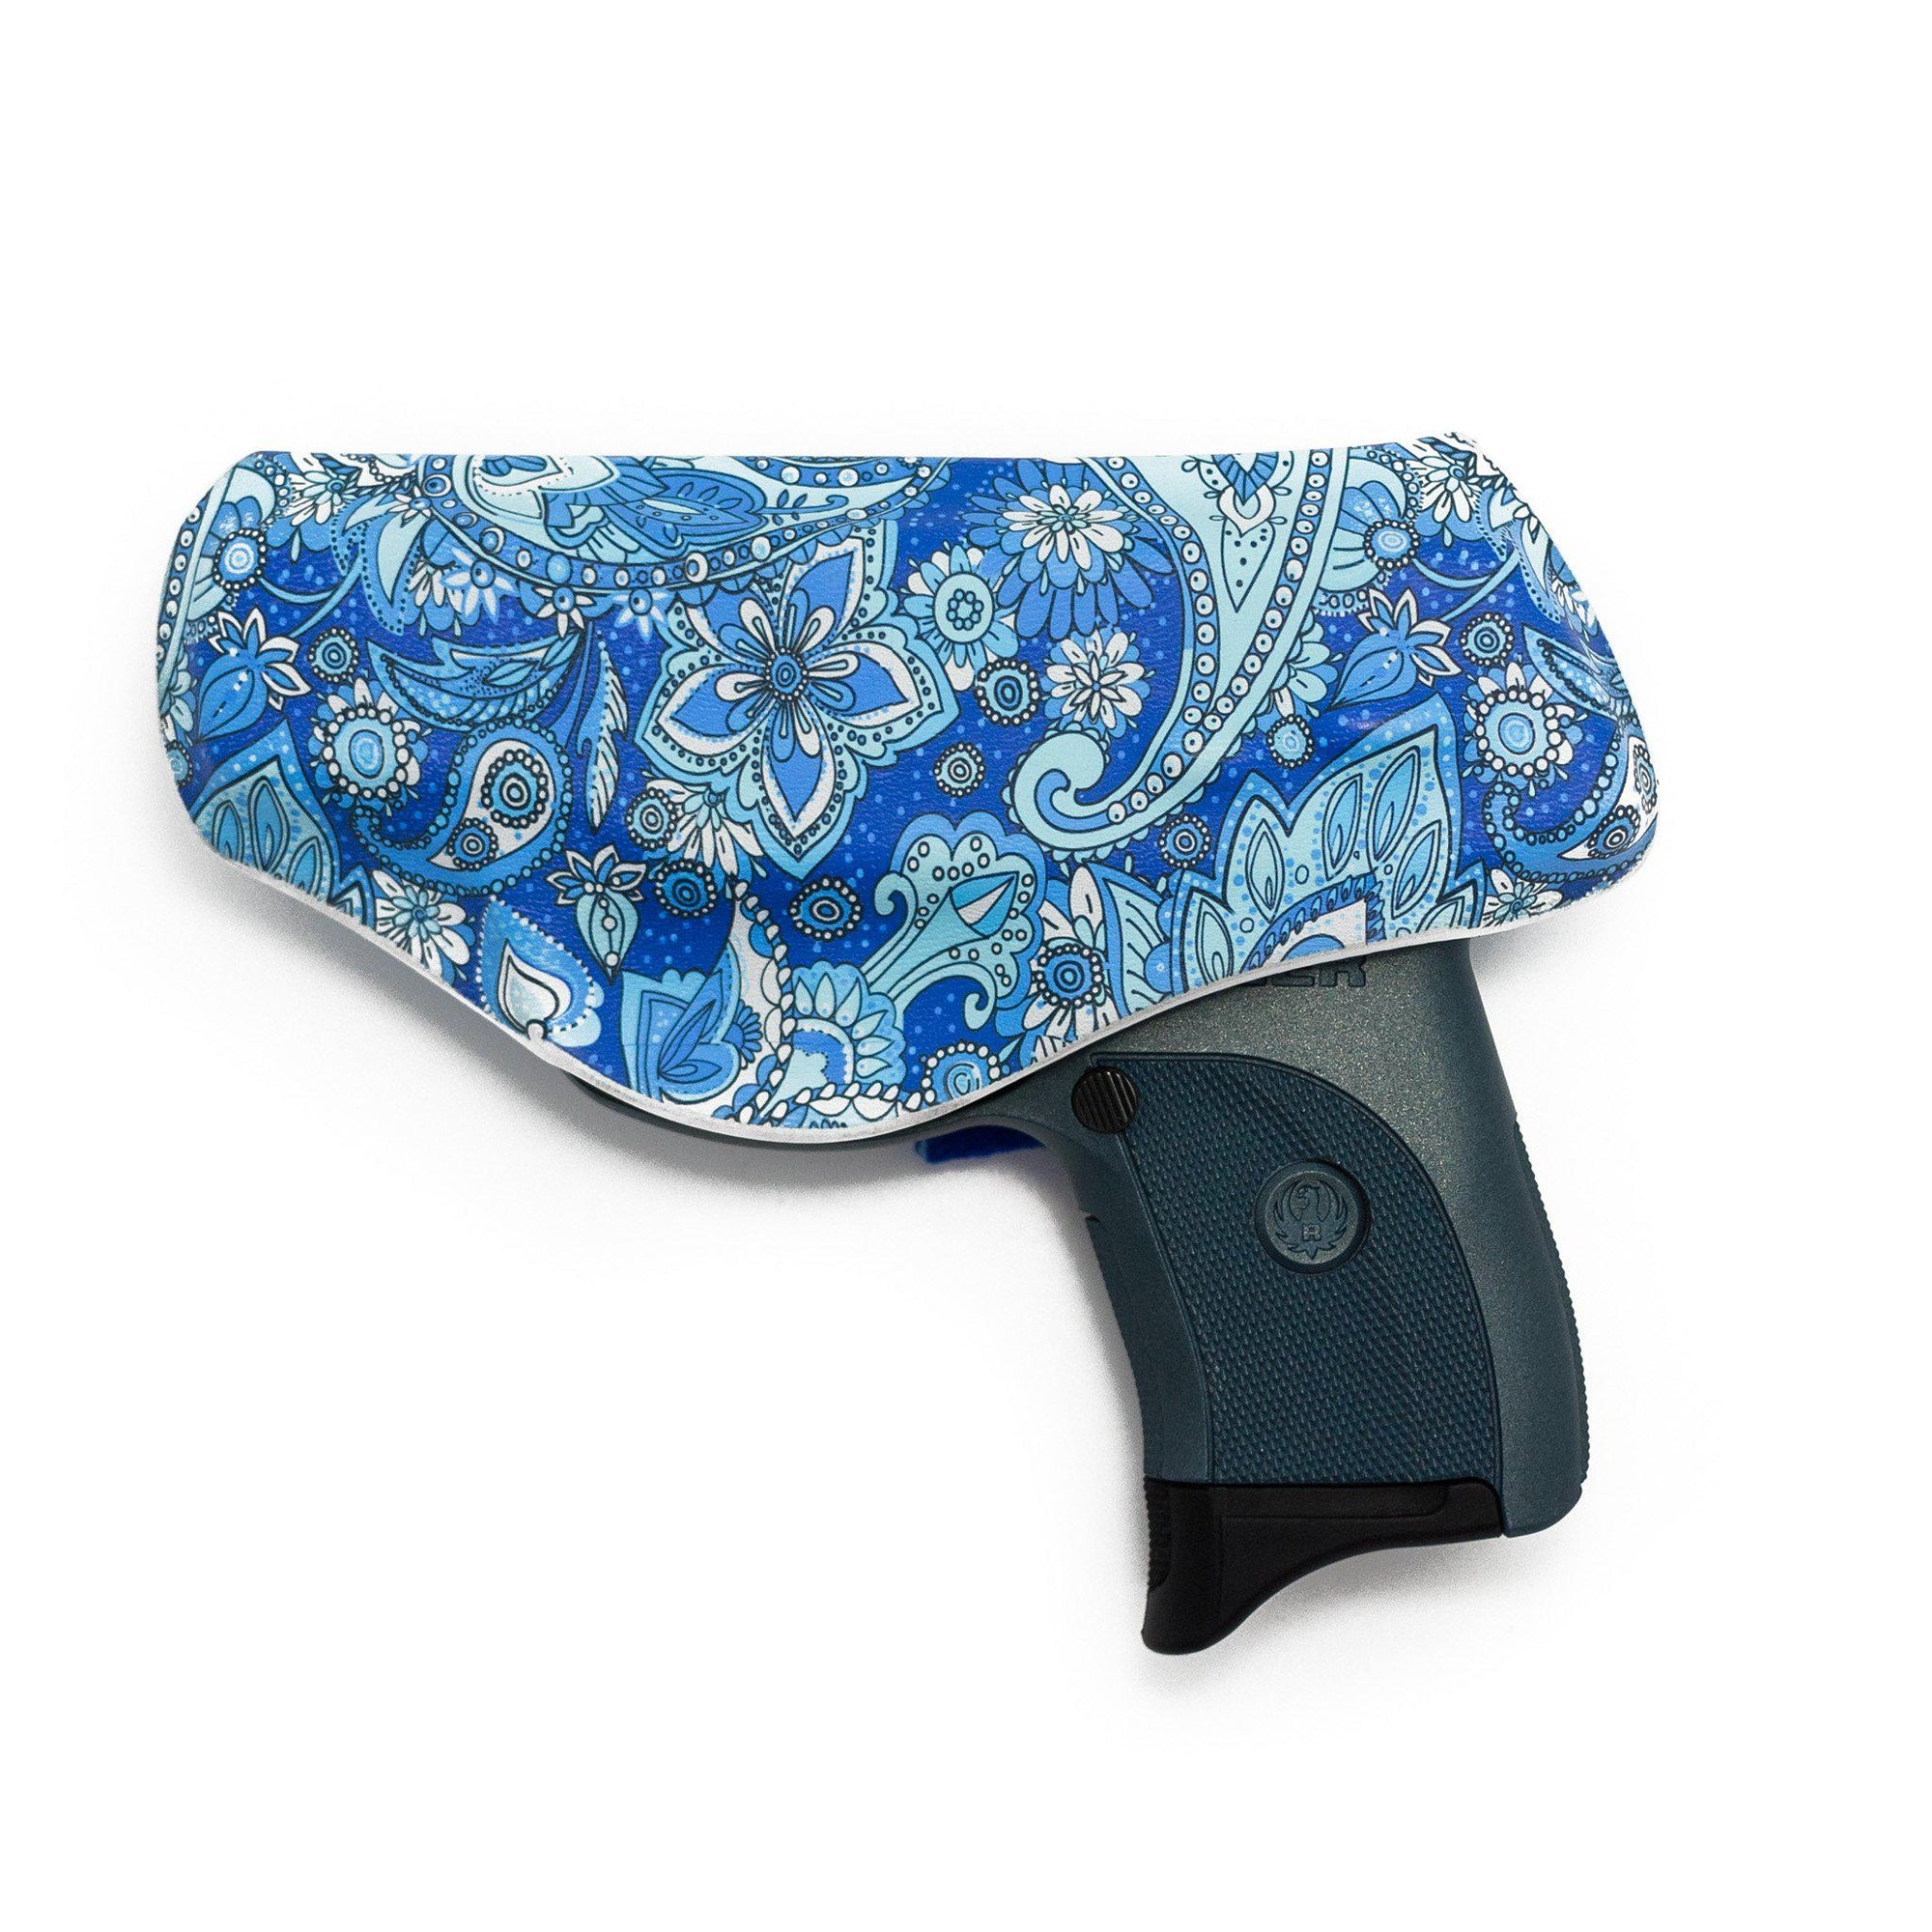 Blue Paisley Flashbang Holster